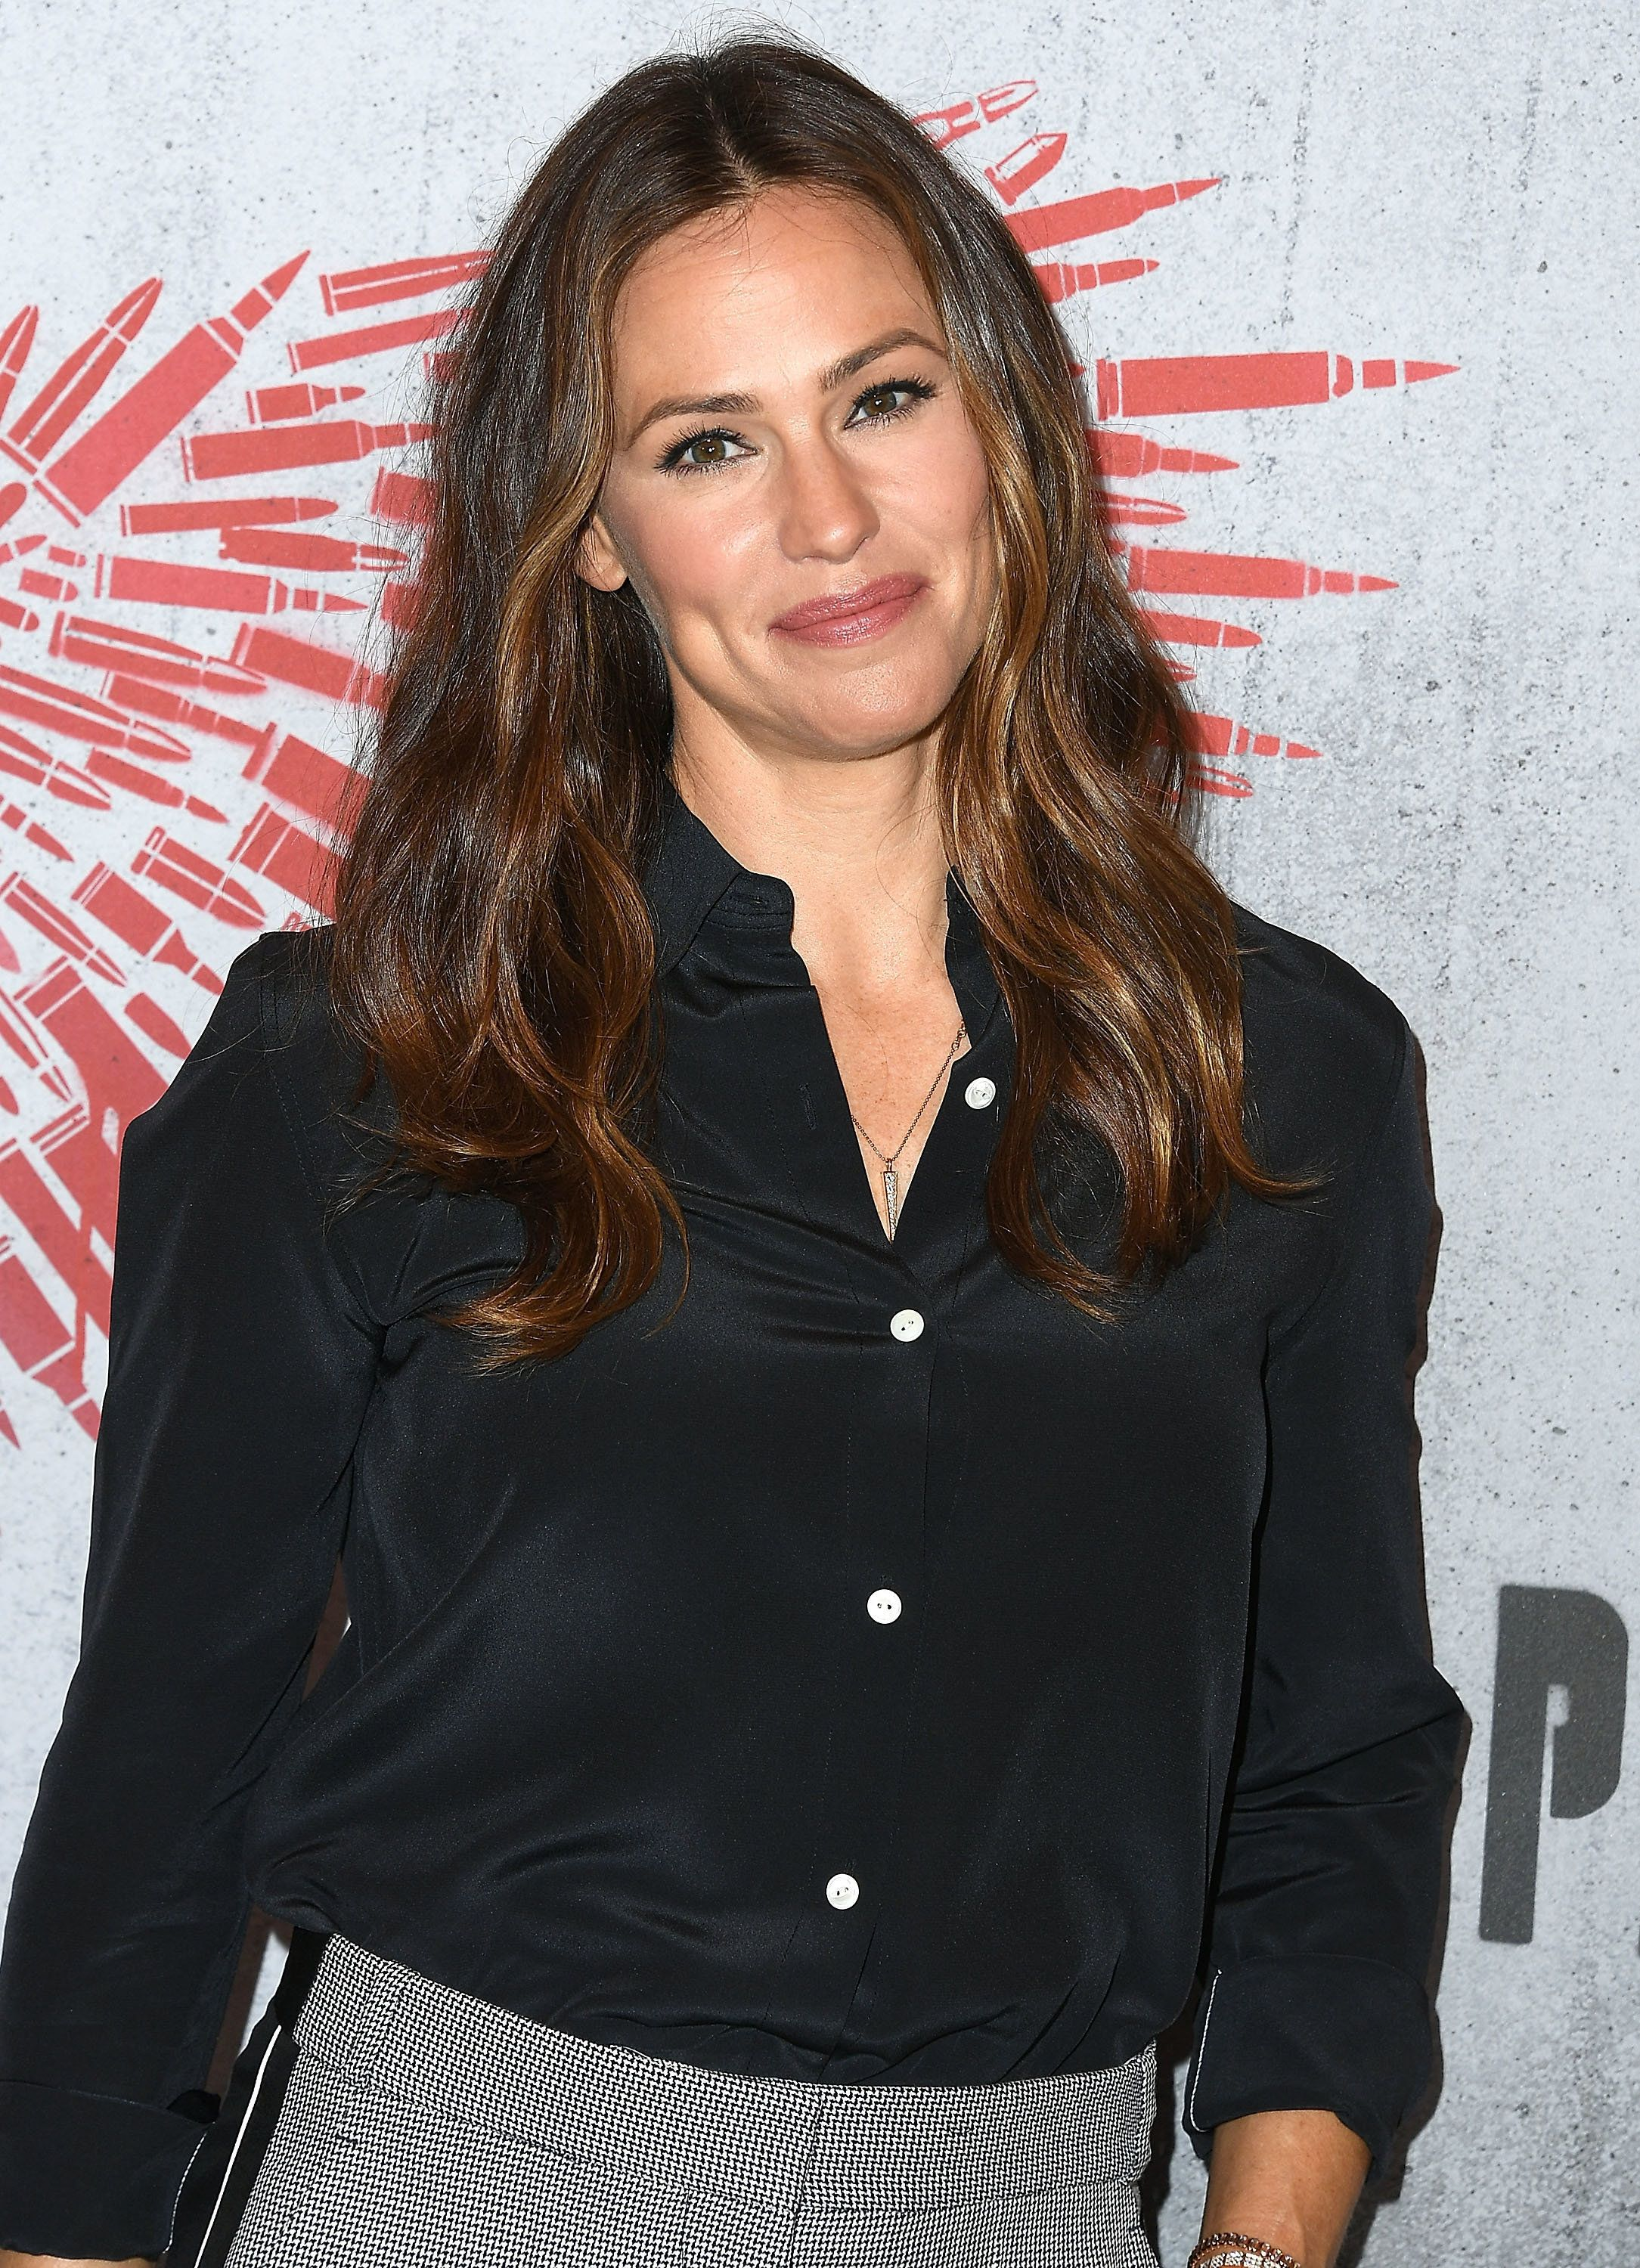 LOS ANGELES, CA - AUGUST 17:  Jennifer Garner poses at the Photo Call For STX Films' 'Peppermint' at Four Seasons Hotel Los Angeles at Beverly Hills on August 17, 2018 in Los Angeles, California.  (Photo by Steve Granitz/WireImage)